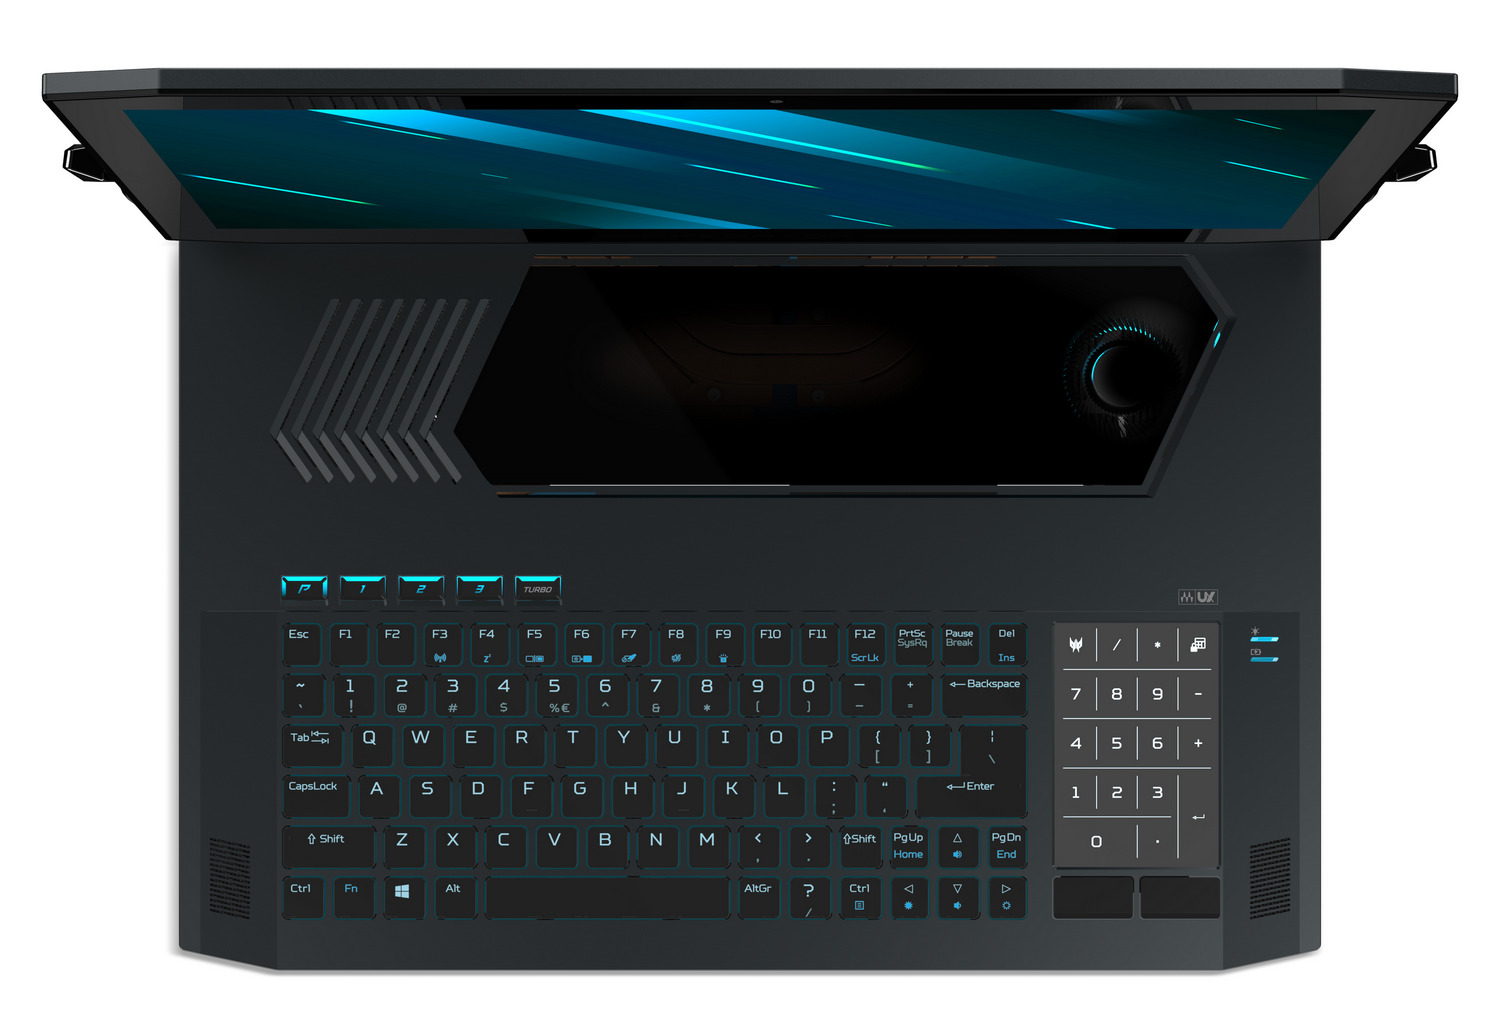 Acer's Predator Triton gaming laptops step up a level